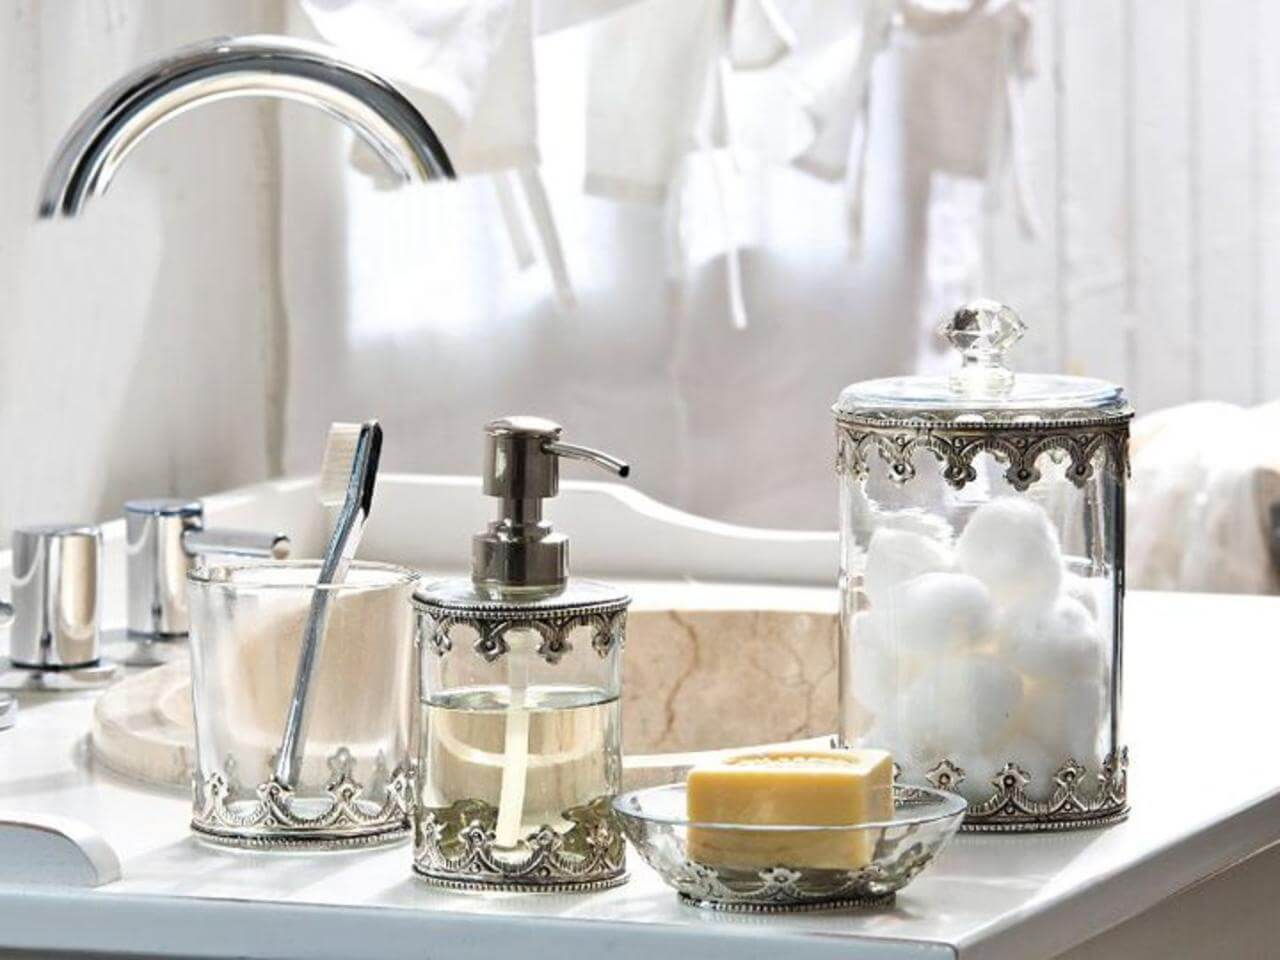 Vintage-Inspired Metal and Glass Bathroom Accessories